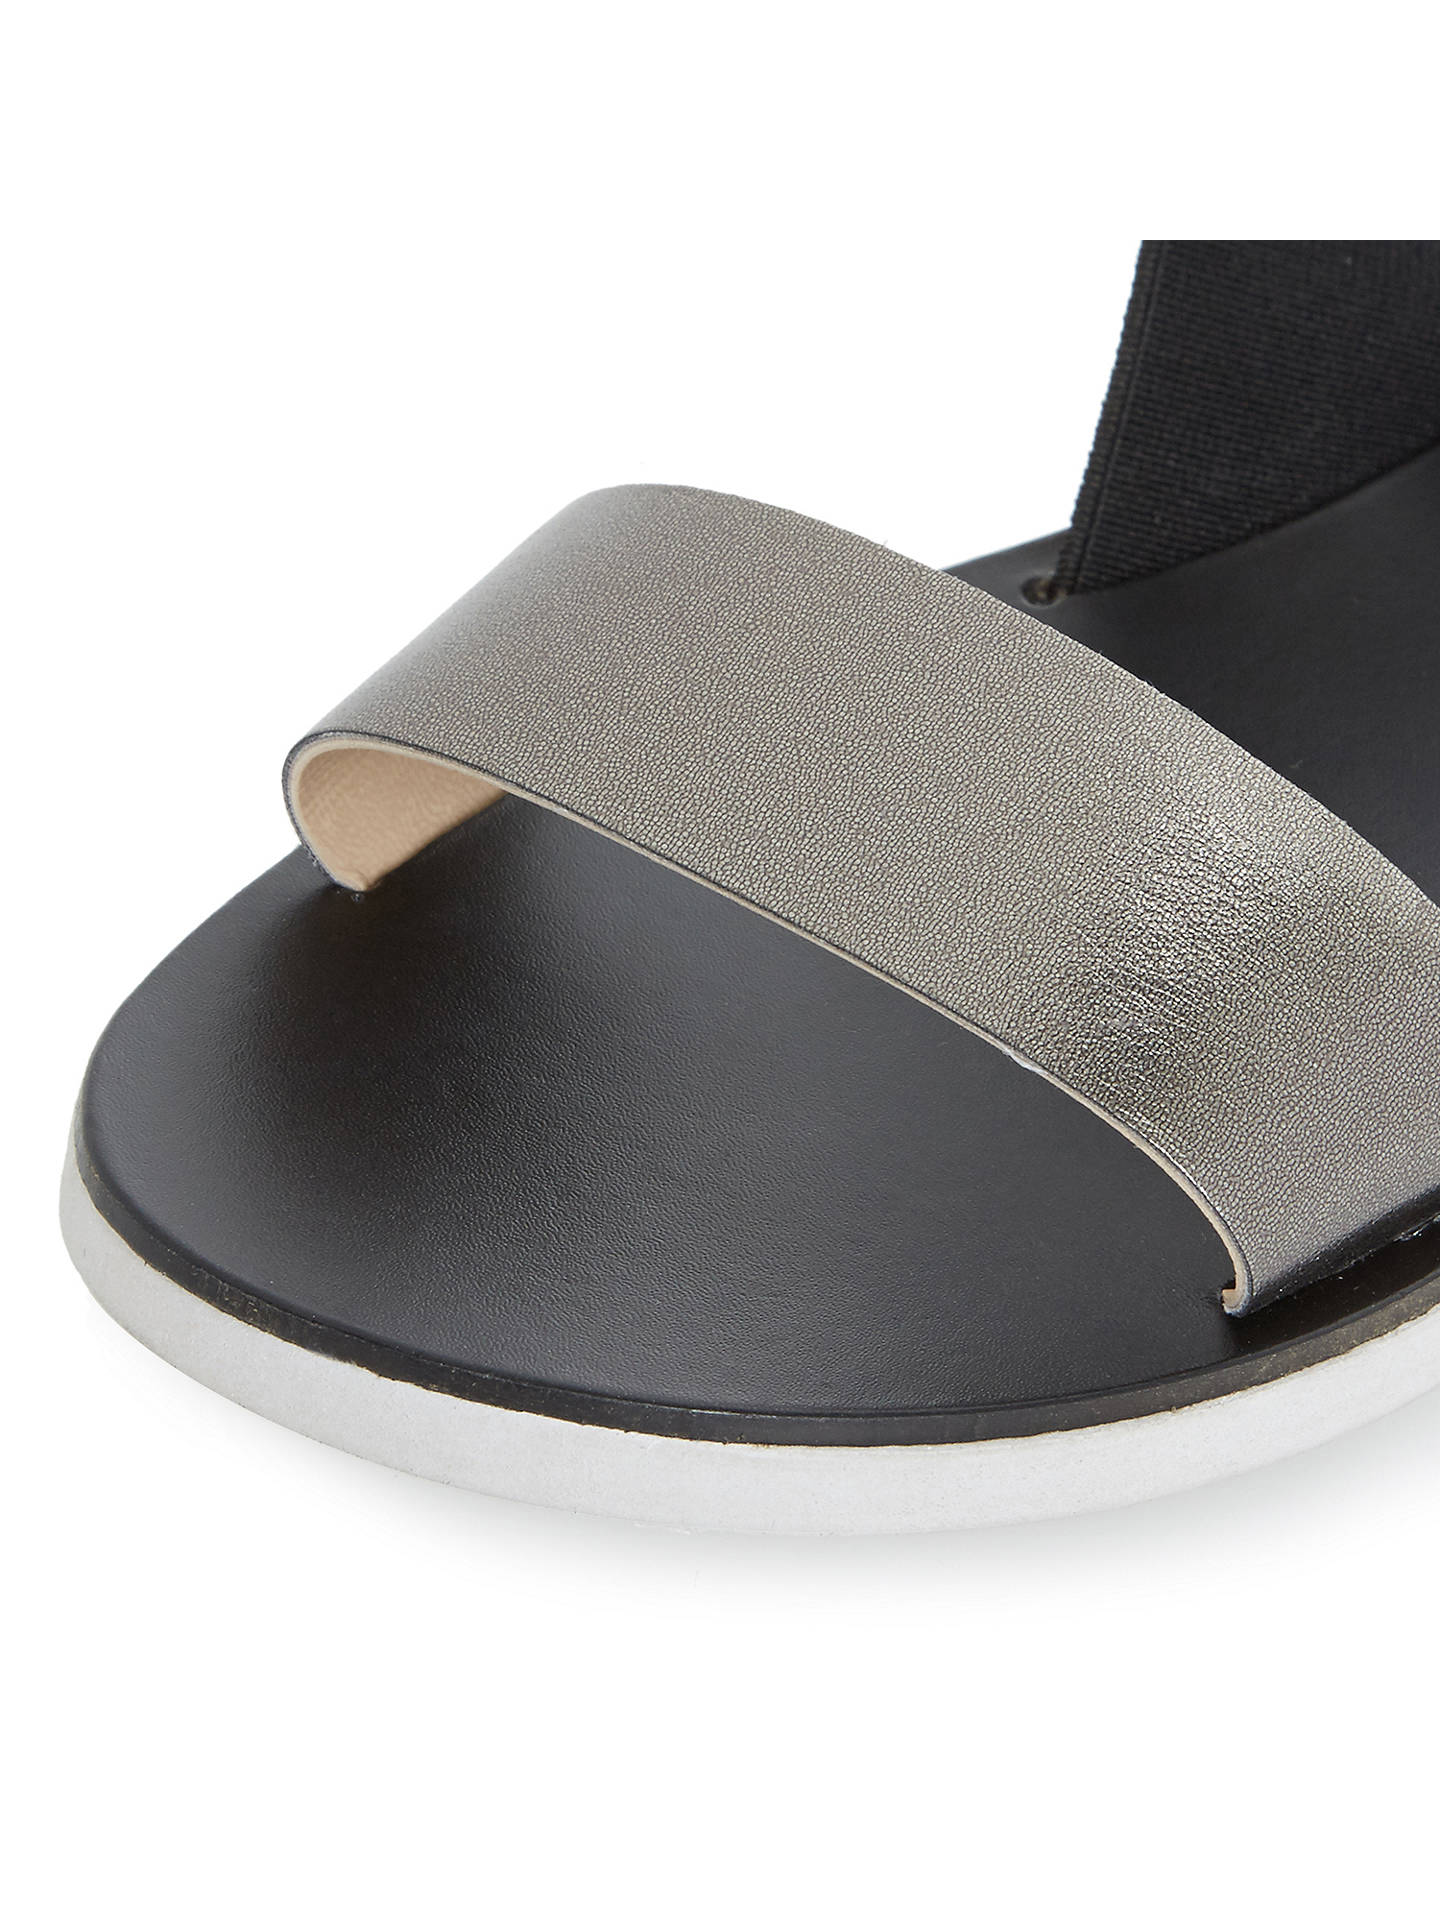 BuyDune Lacer Slip On Sandals, Black, 3 Online at johnlewis.com